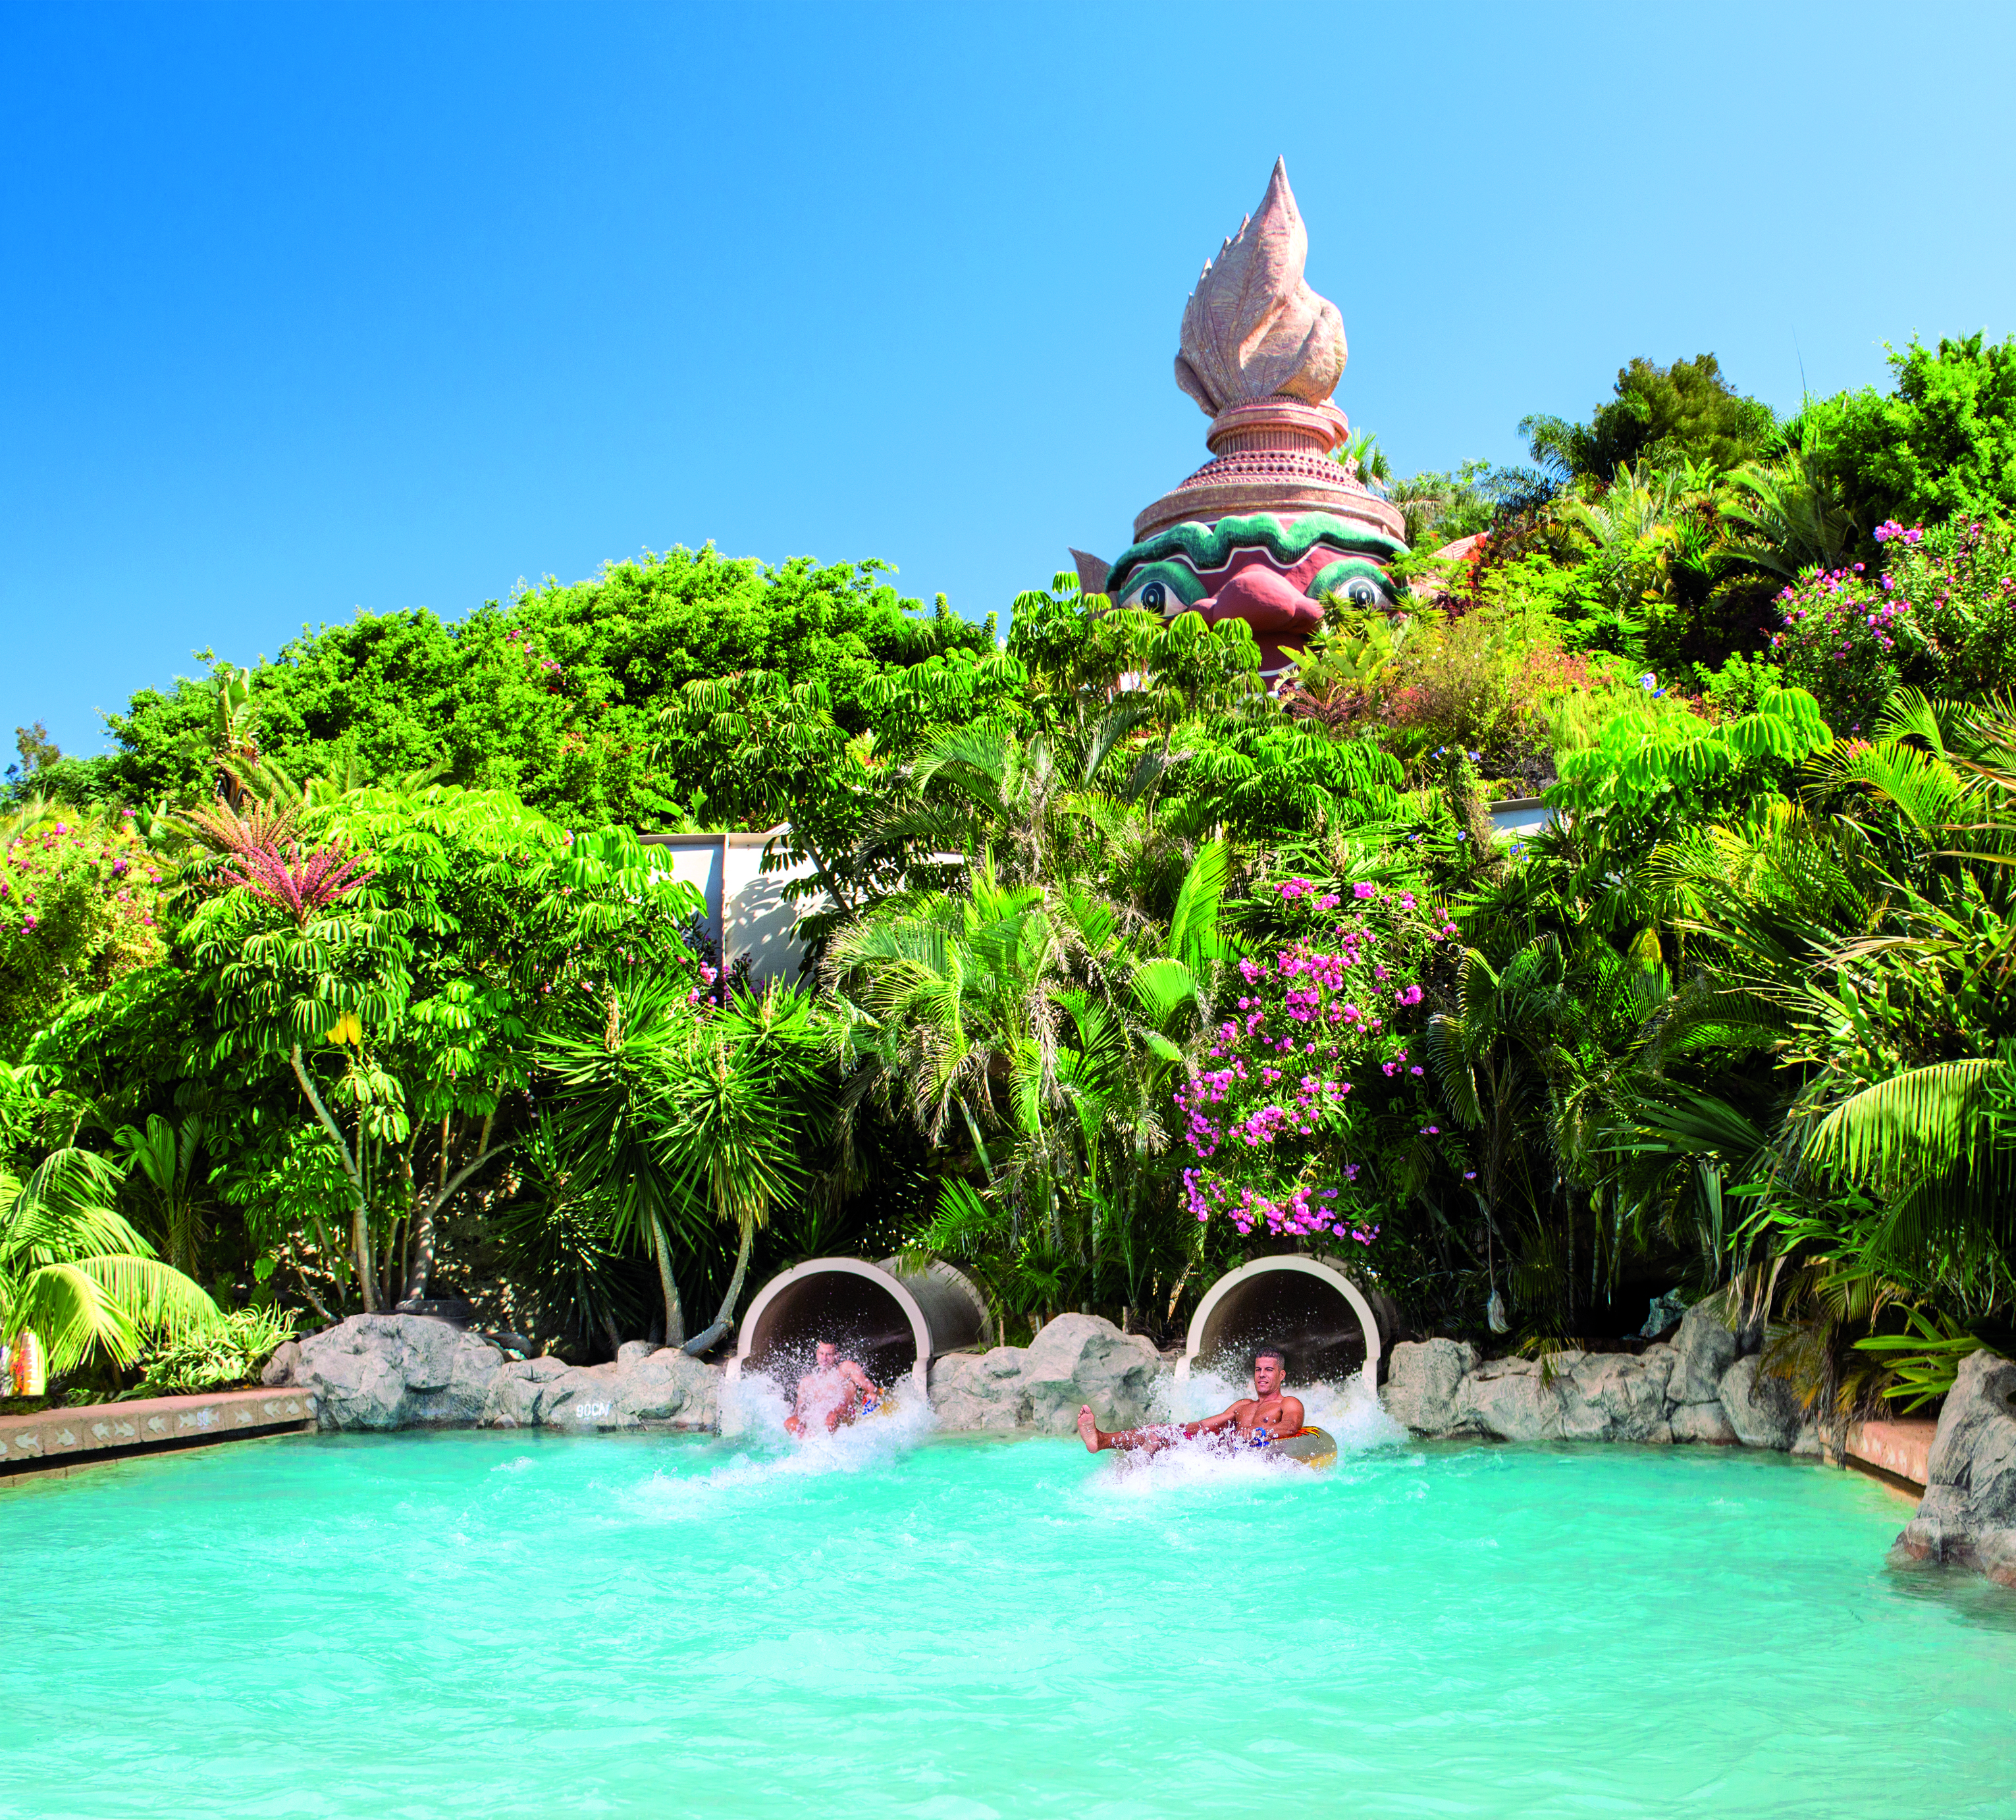 The Giant at Siam Park